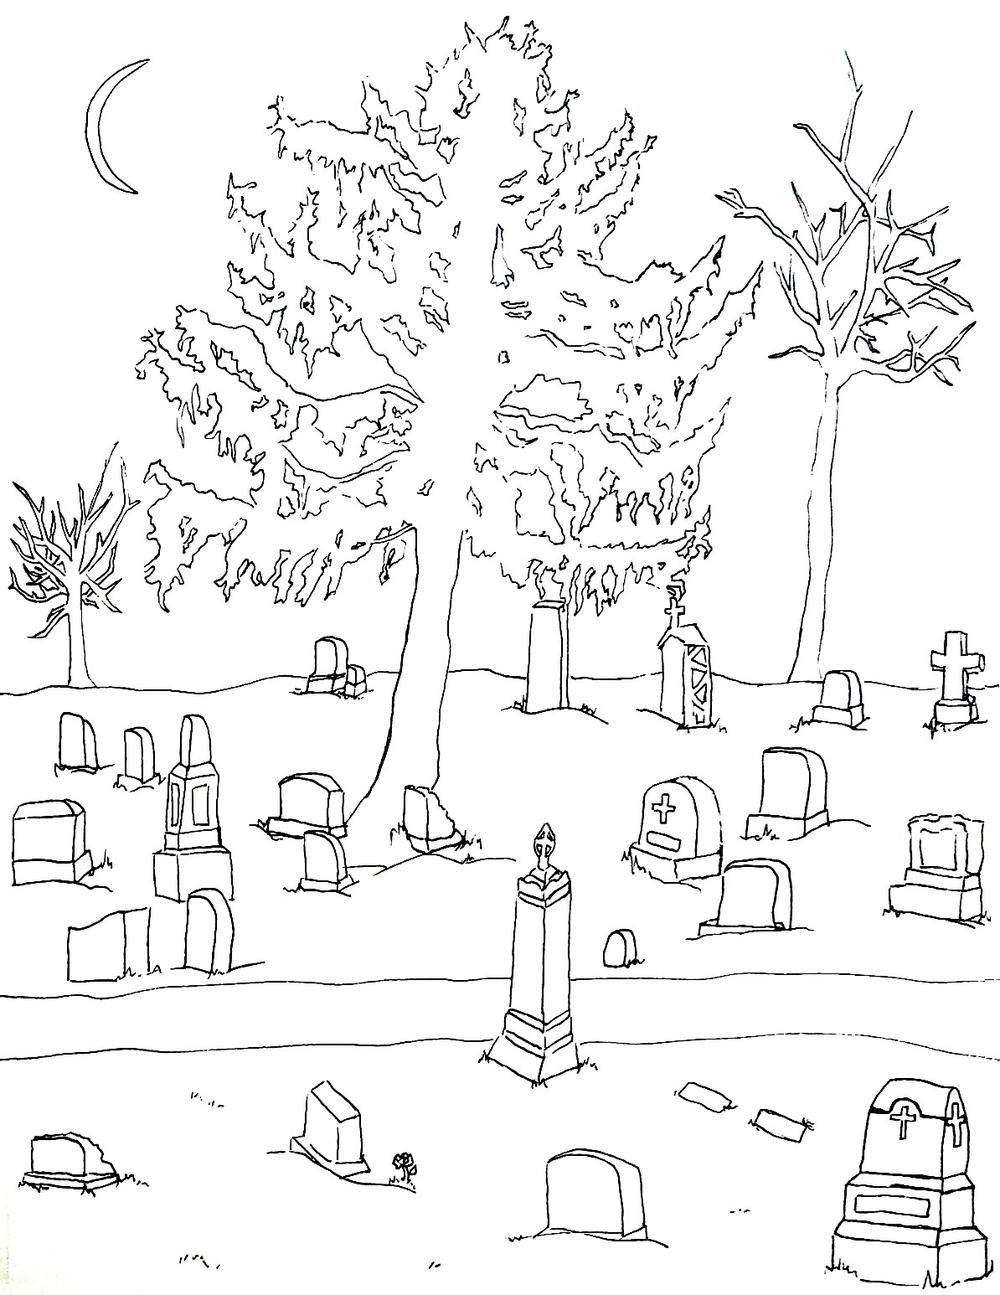 Cemetery Halloween Coloring Page | FaveCrafts.com